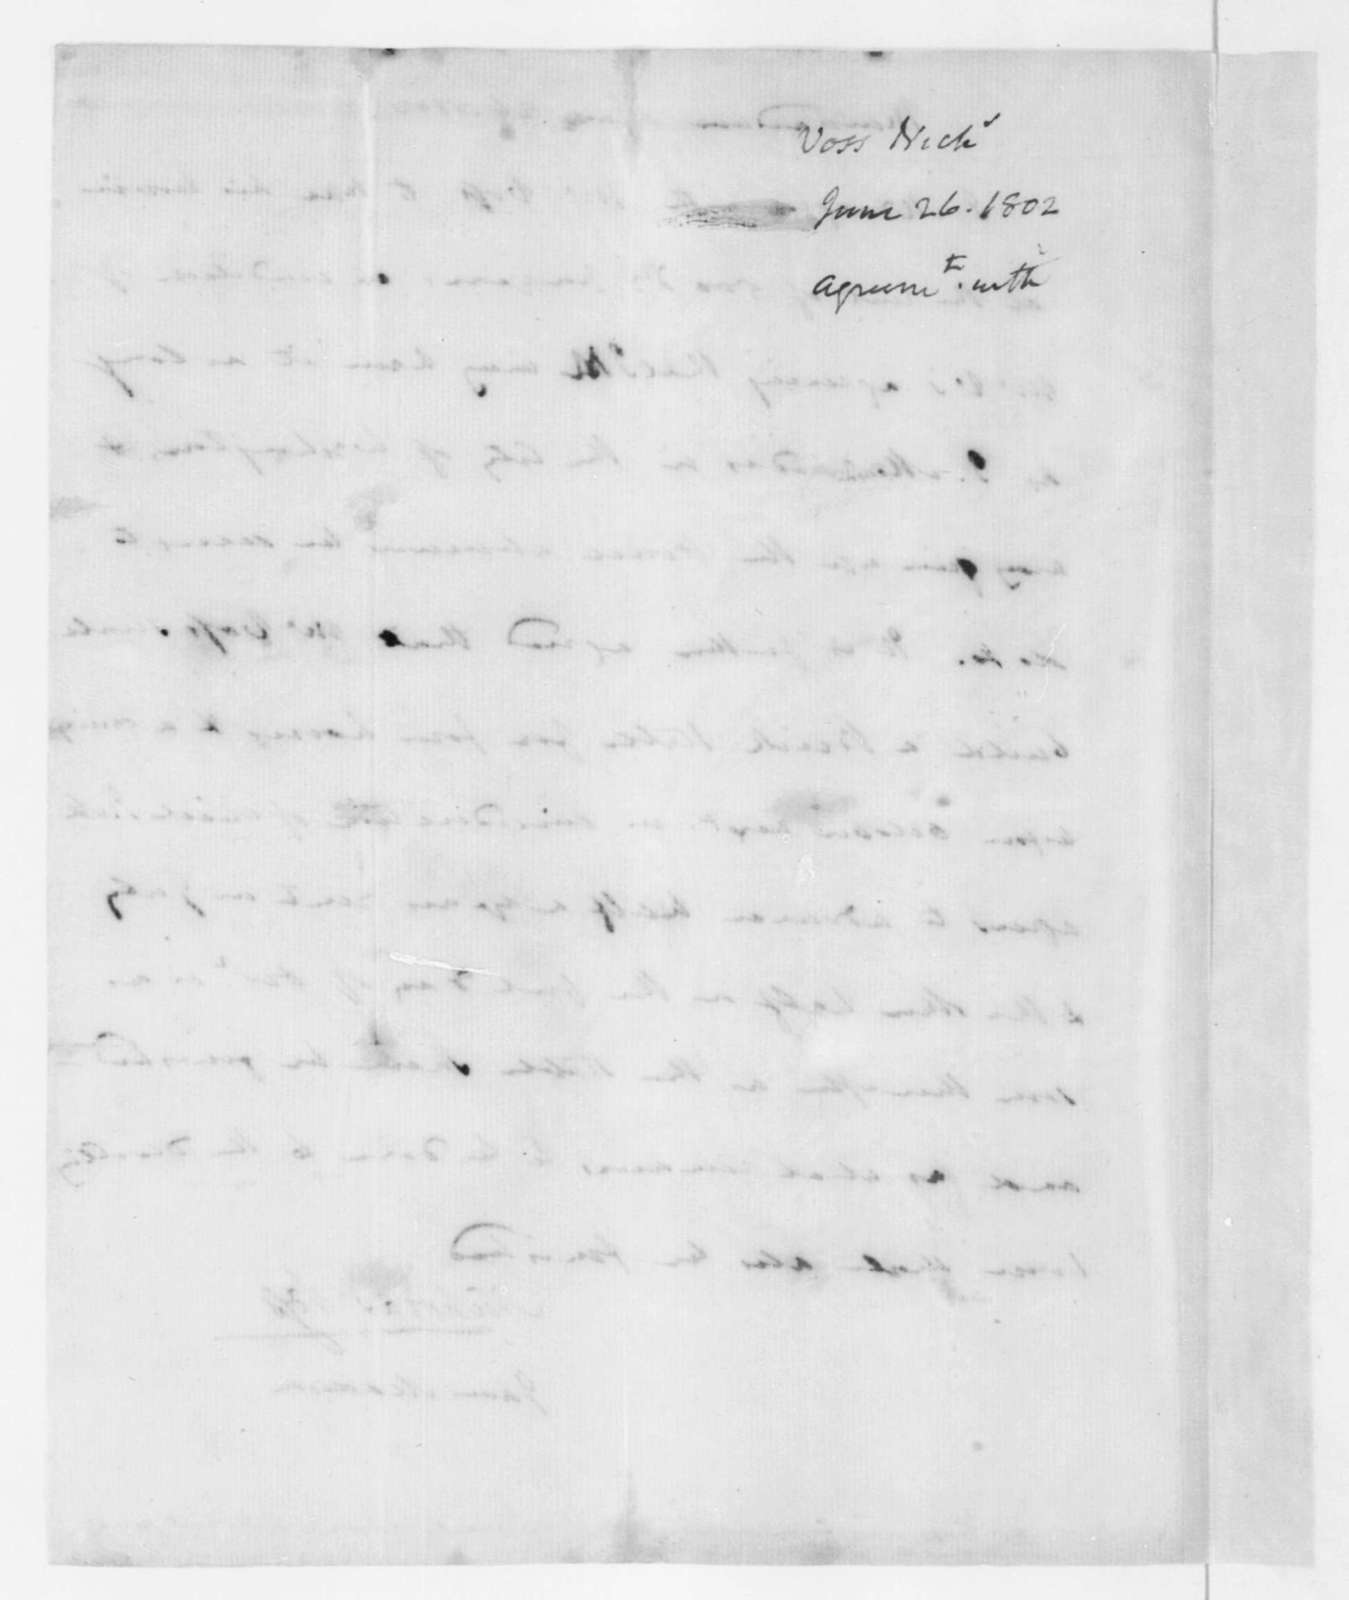 Nicholas Voss and James Madison, June 26, 1802. Agreement on the lease of a house for J. Madison.